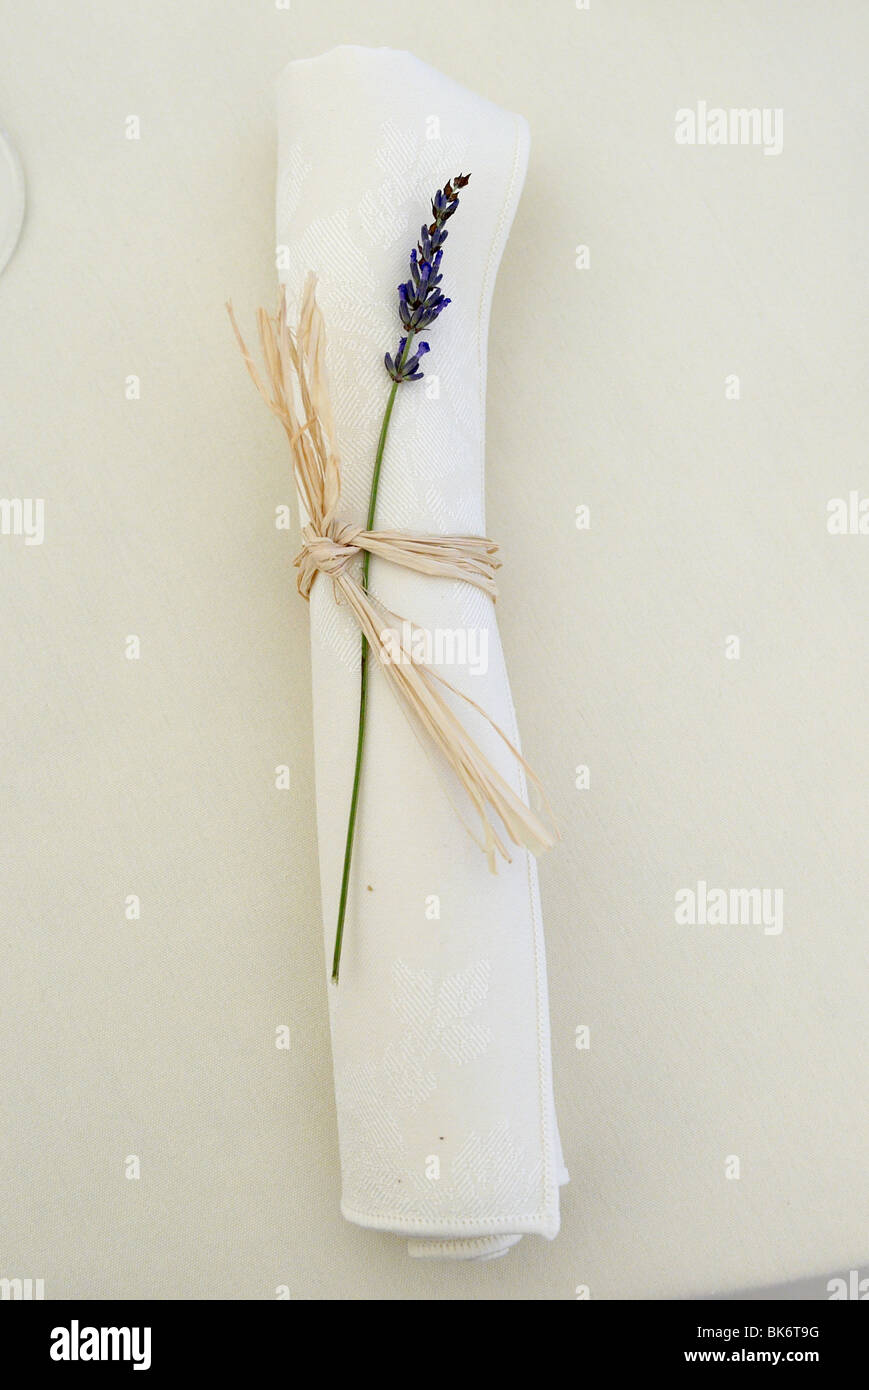 White napkin with lavender flower, rolled and tied with raffia. - Stock Image